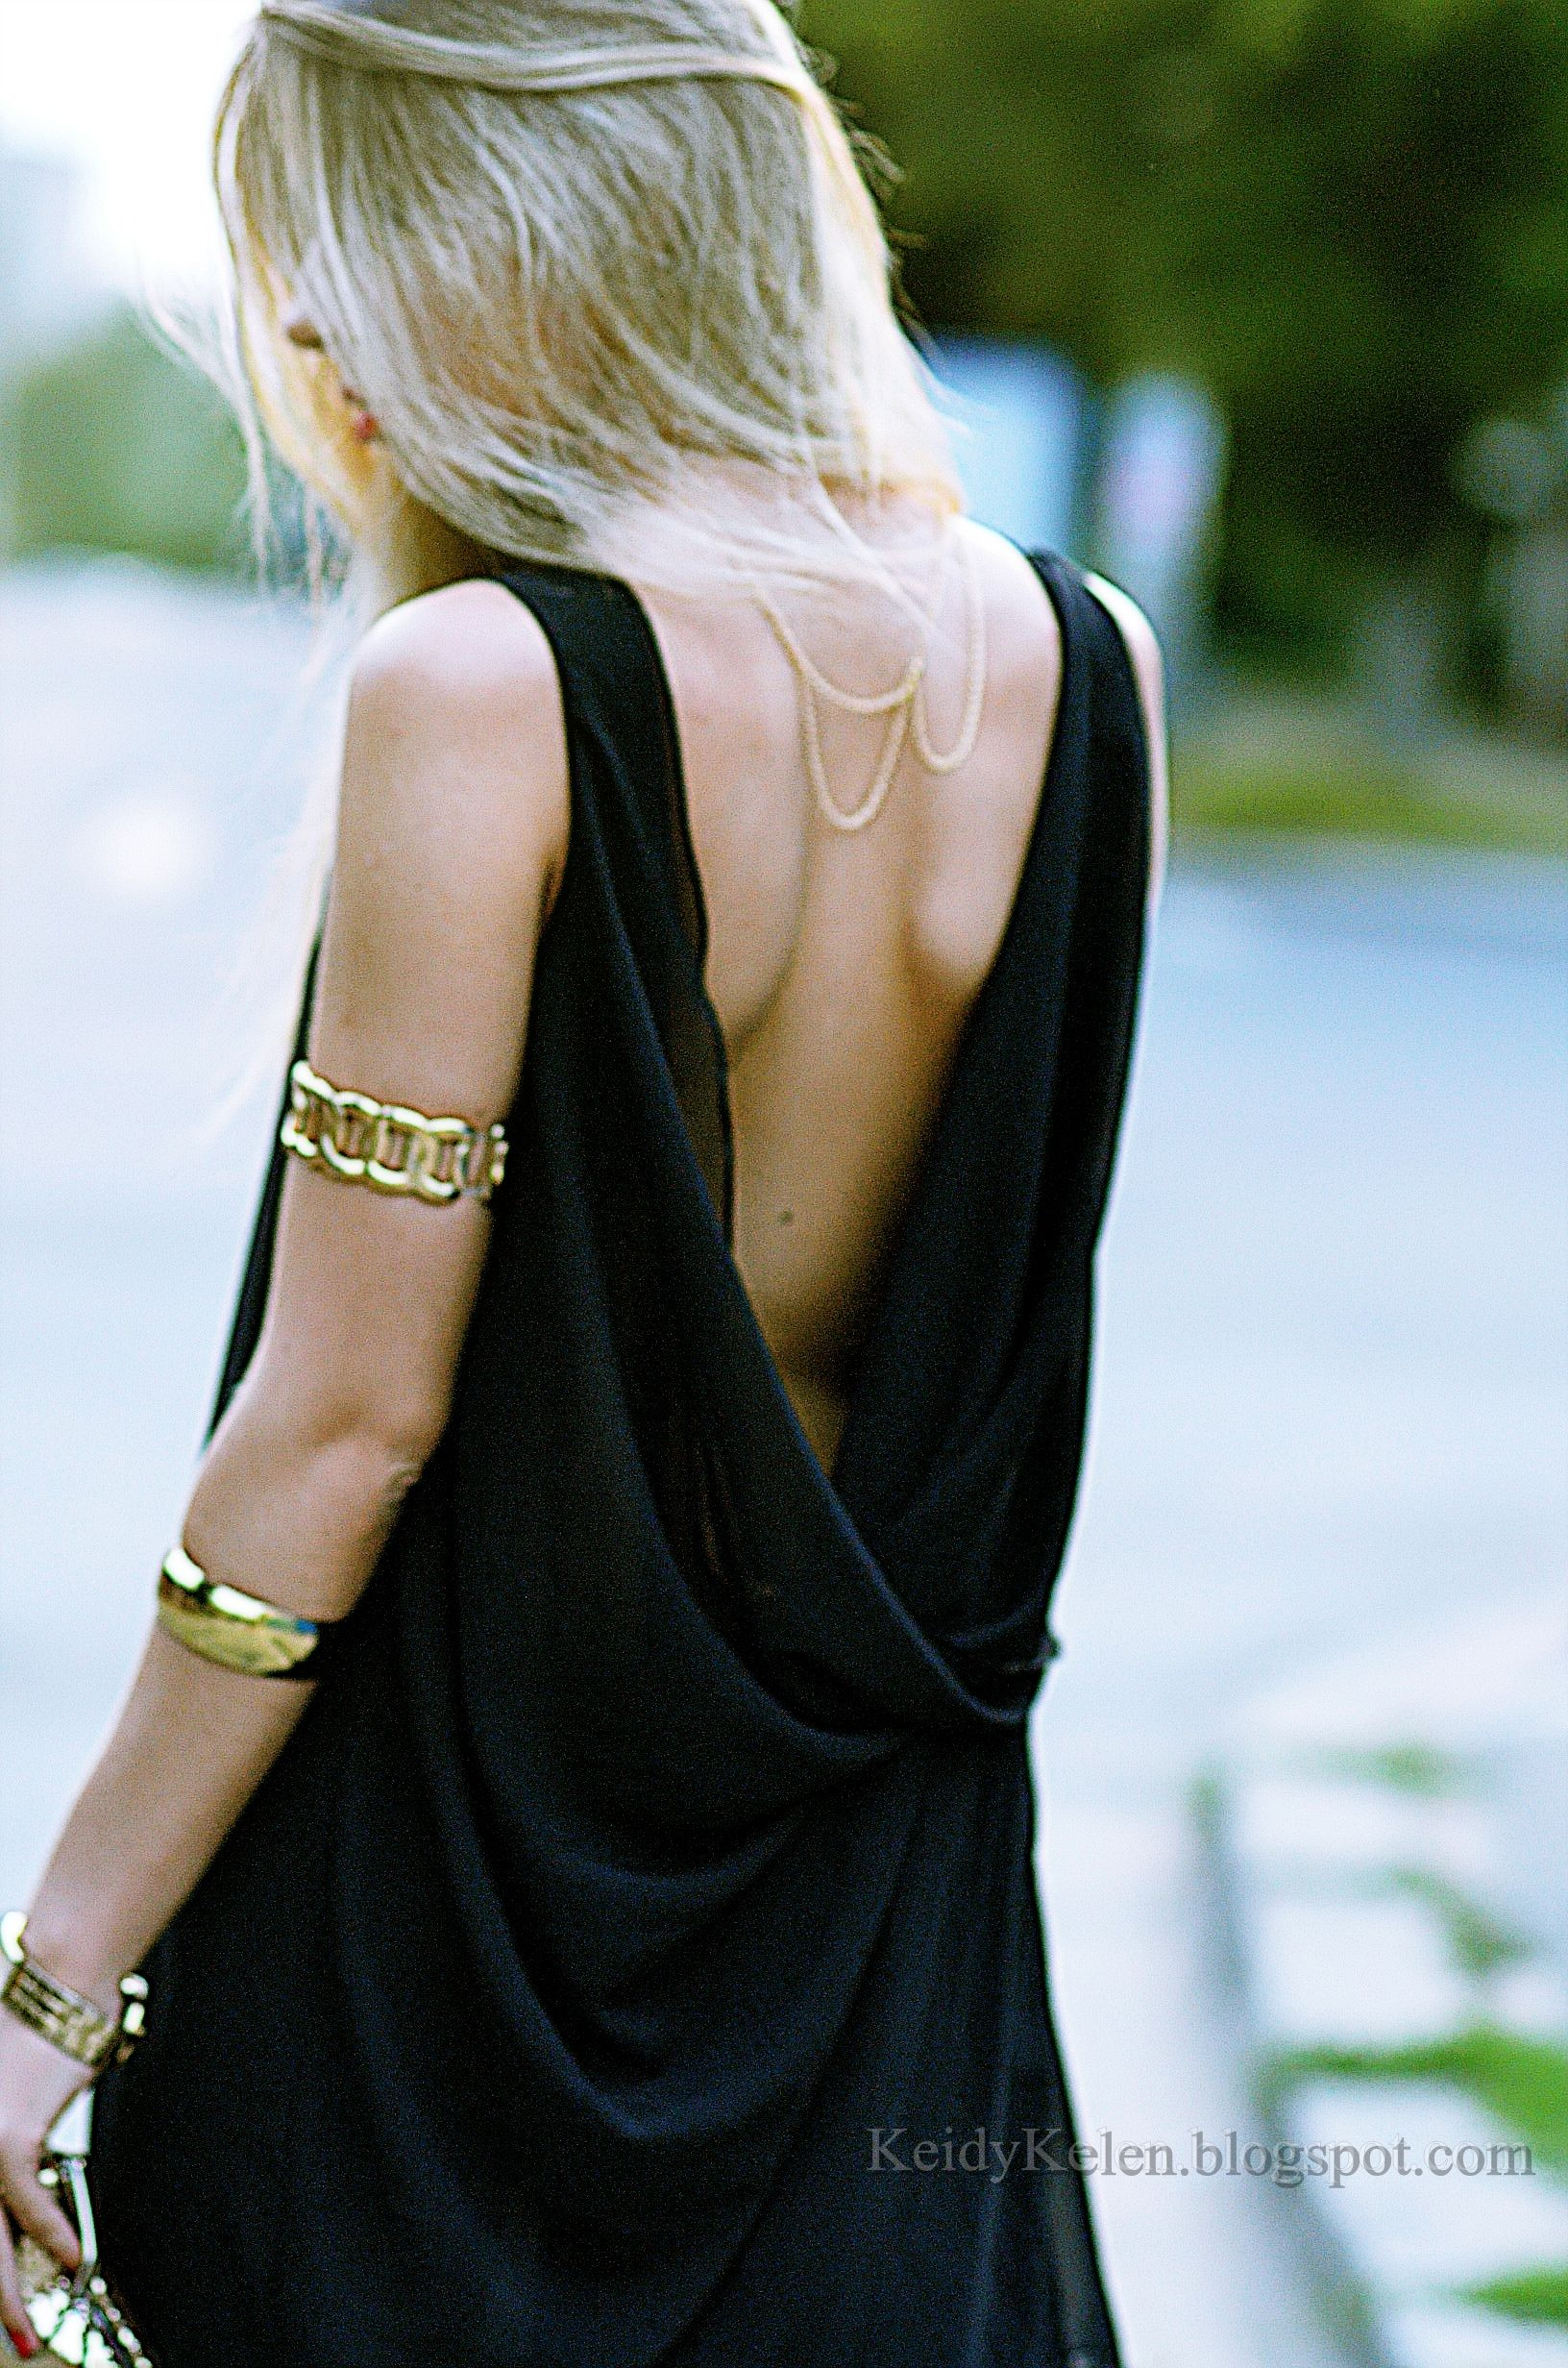 necklace pin lbd notice fashion gold the worn delicate stud back dress top scoop pinterest so cuffs and low in arm backless chic summer